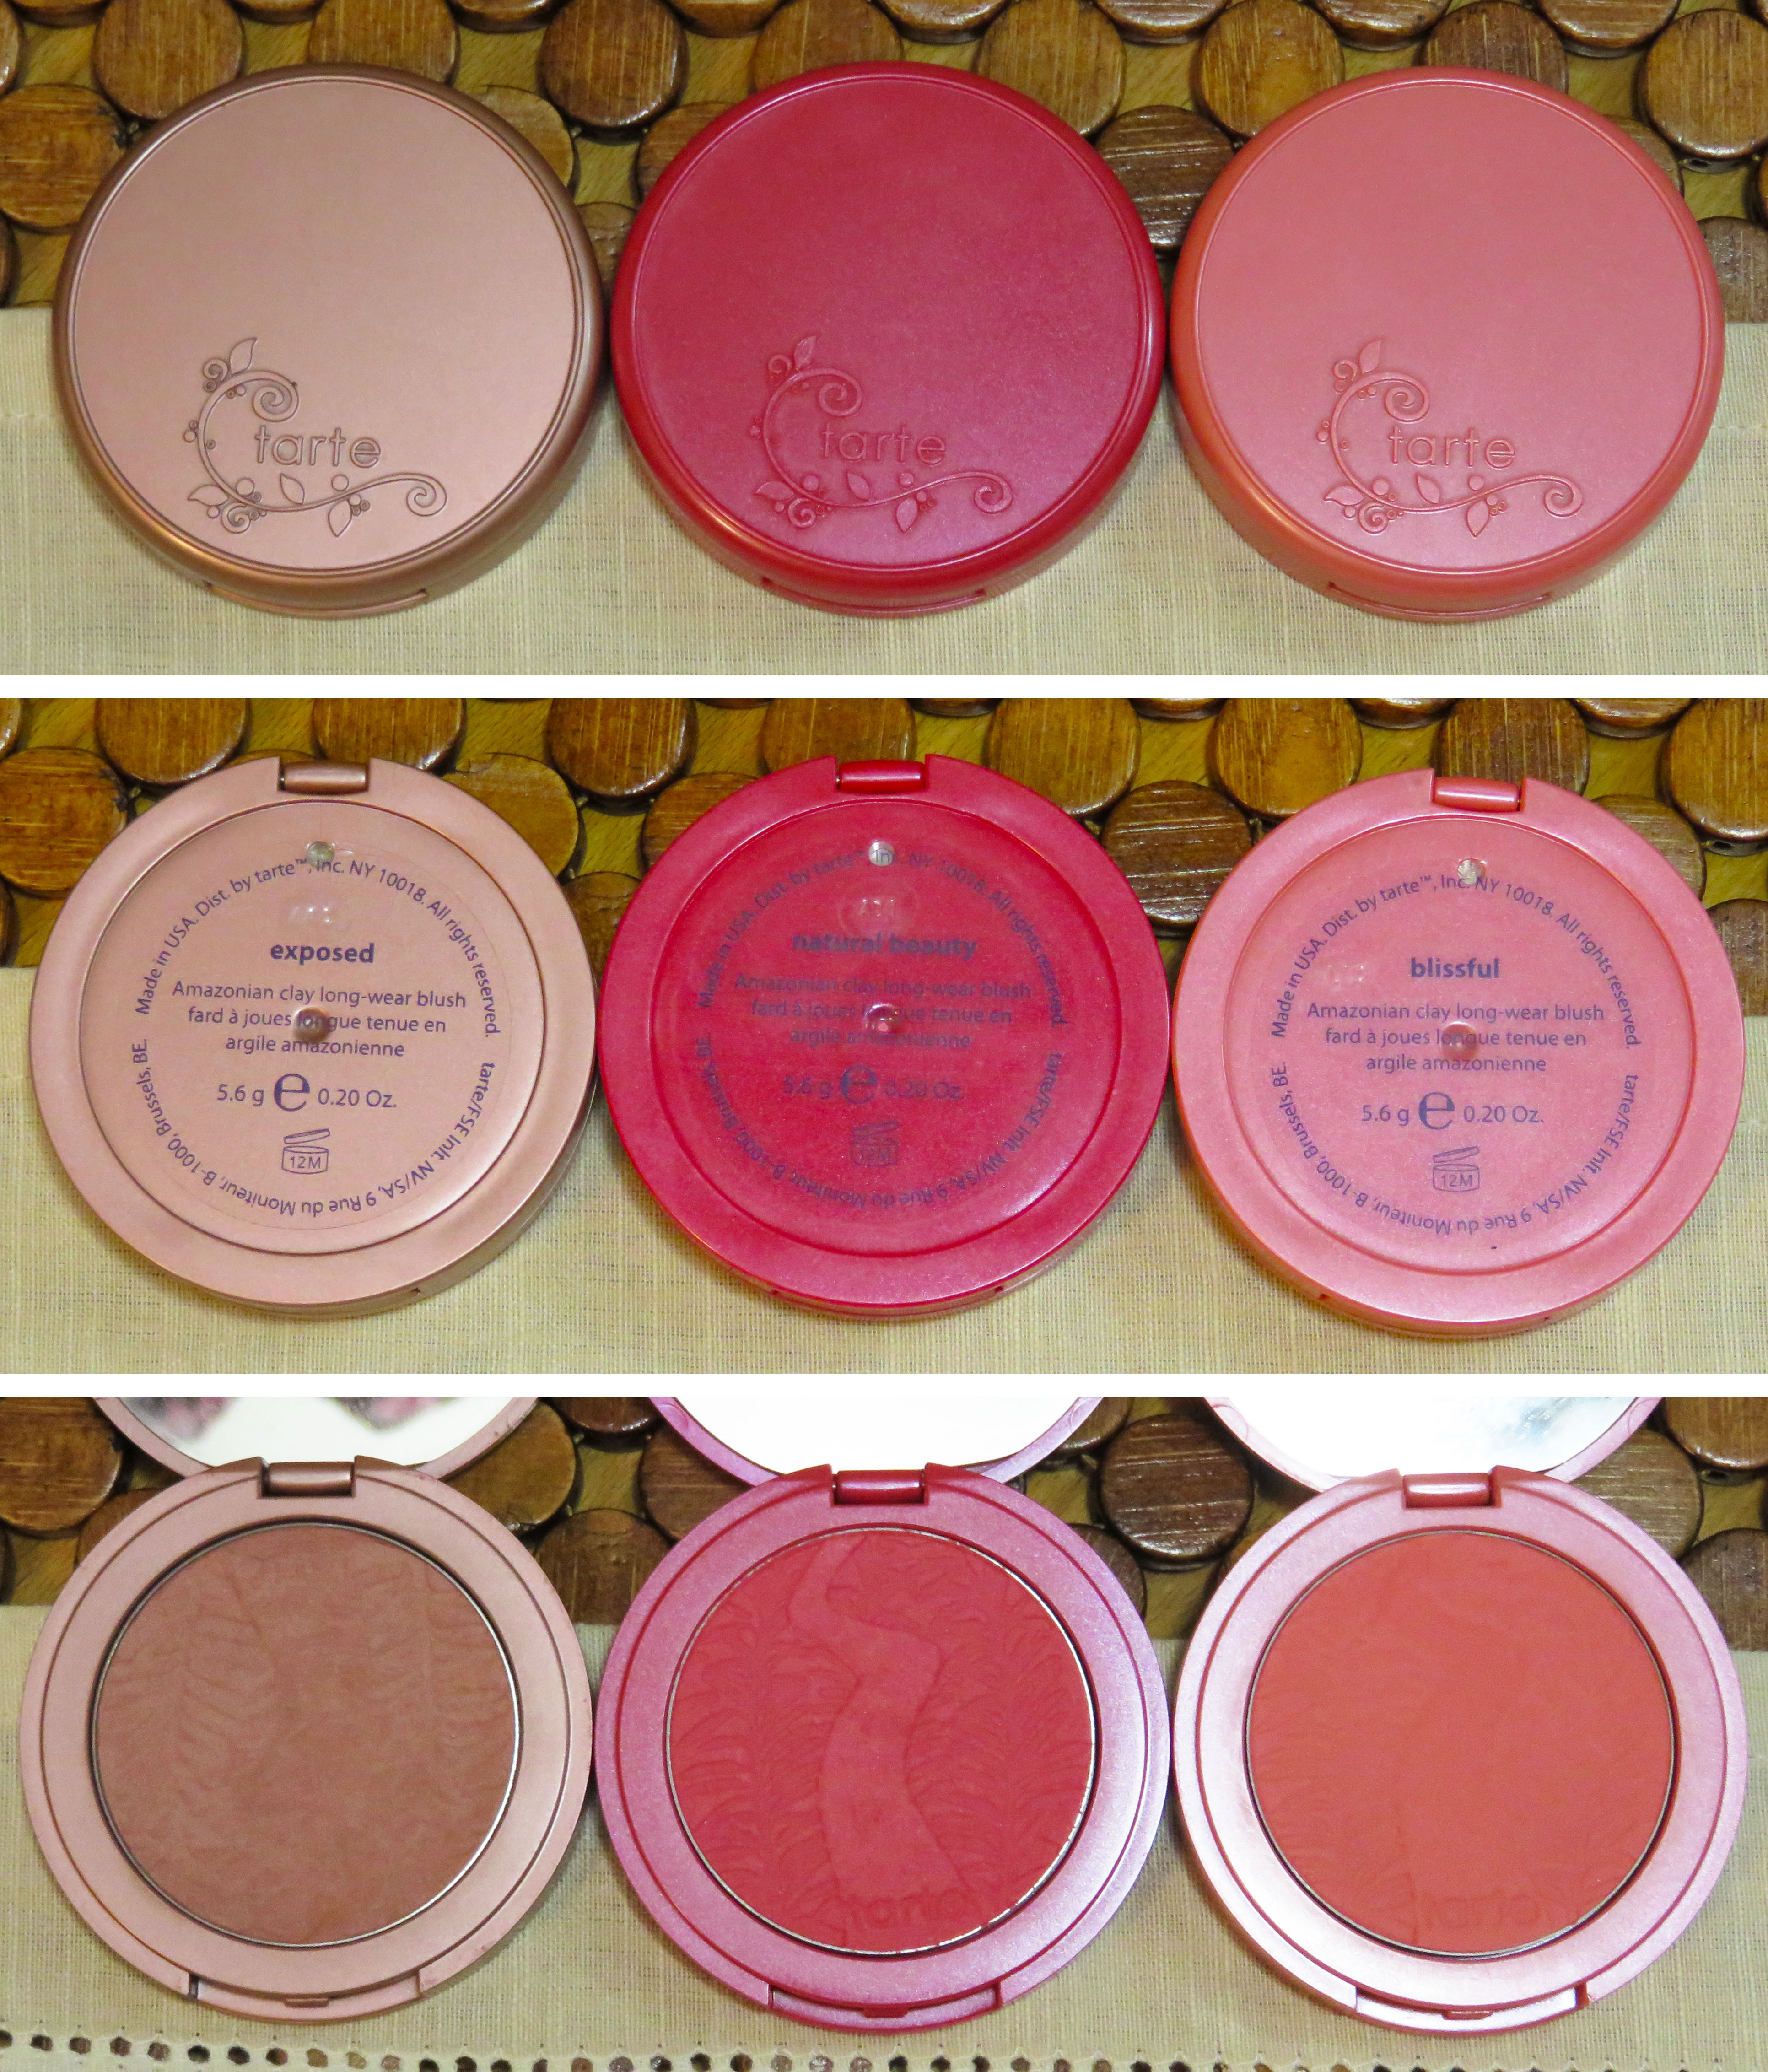 tarte amazonian clay 12 hour blush review